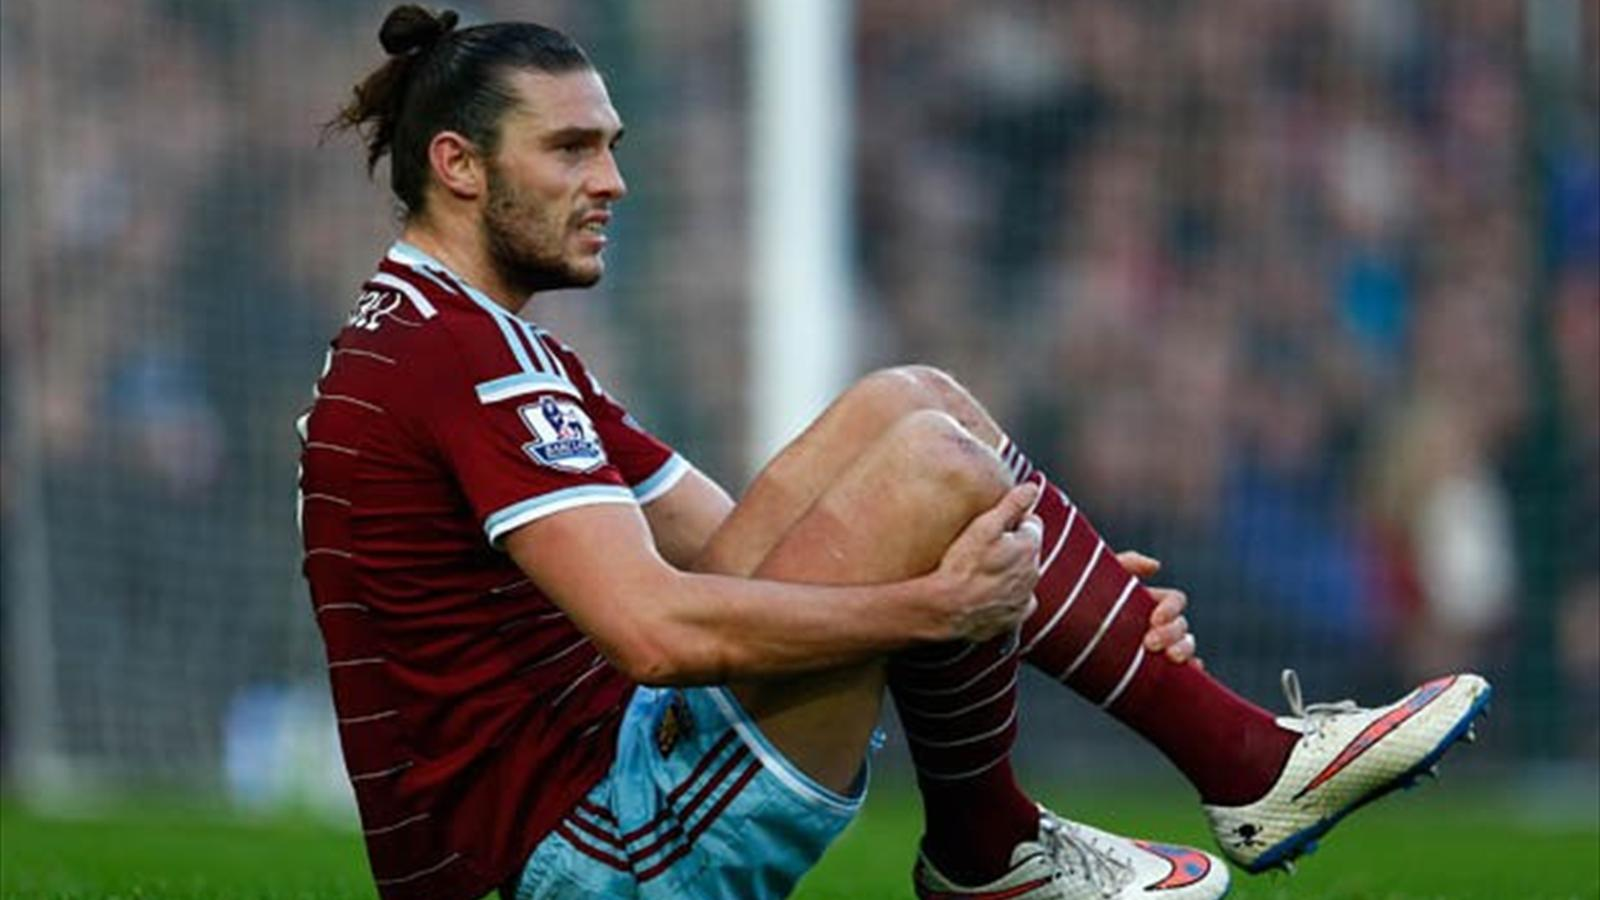 Andy Carroll has struggled with injuries since his permanent move to West Ham